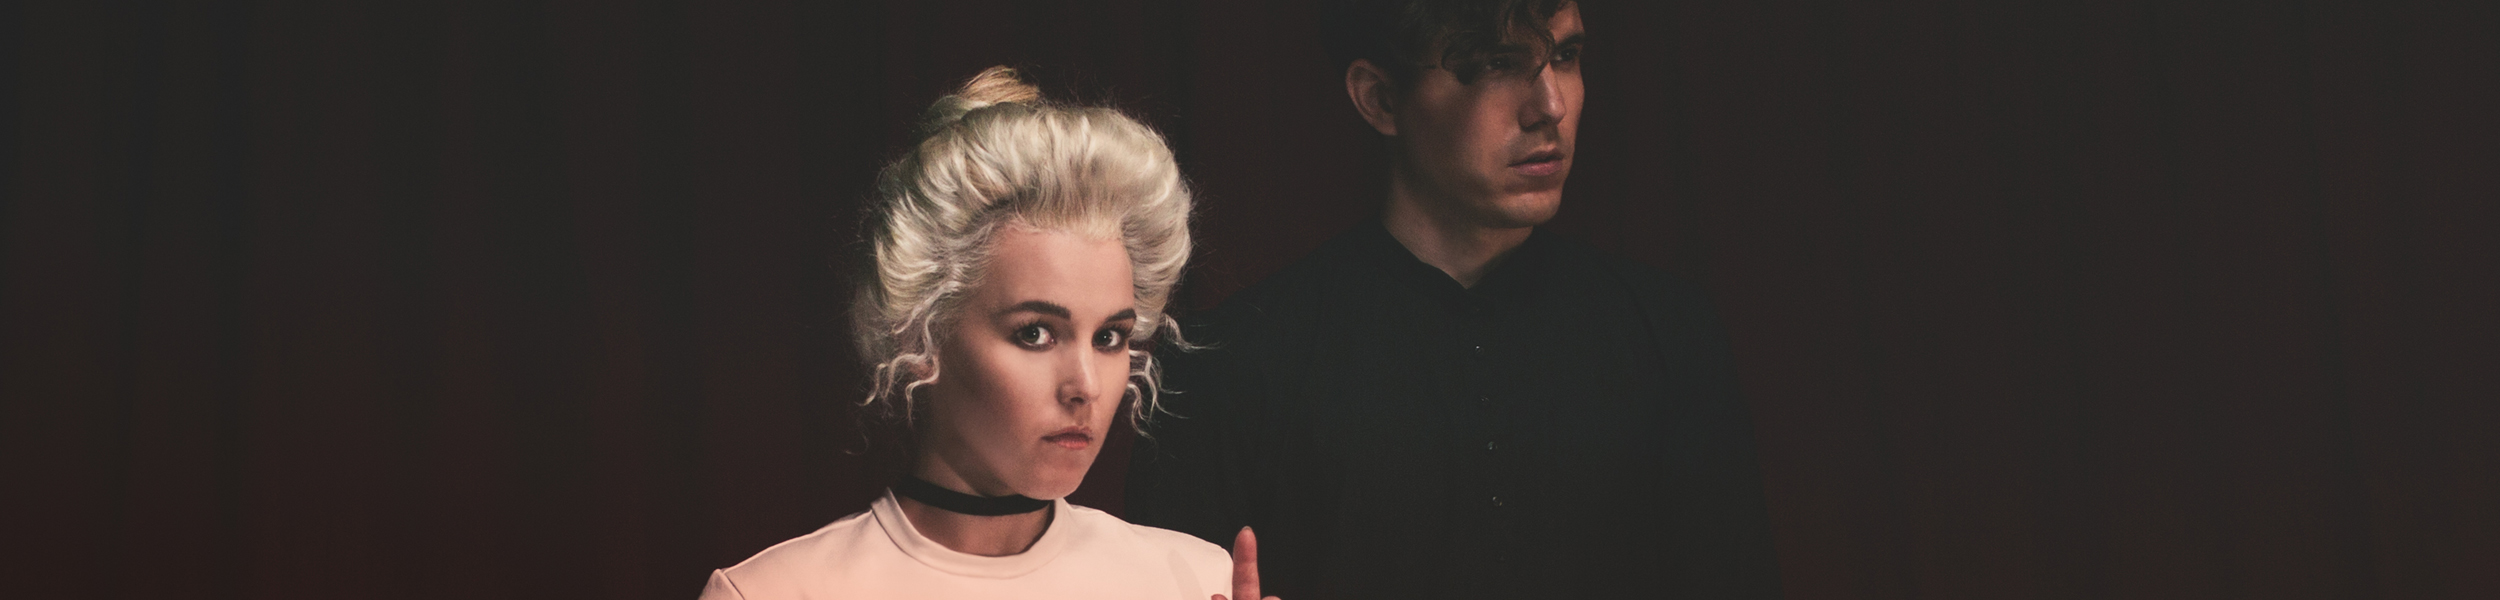 "Purity Ring - Belispeak 12"" Released Next Week, Extensive North American Tour Announced"